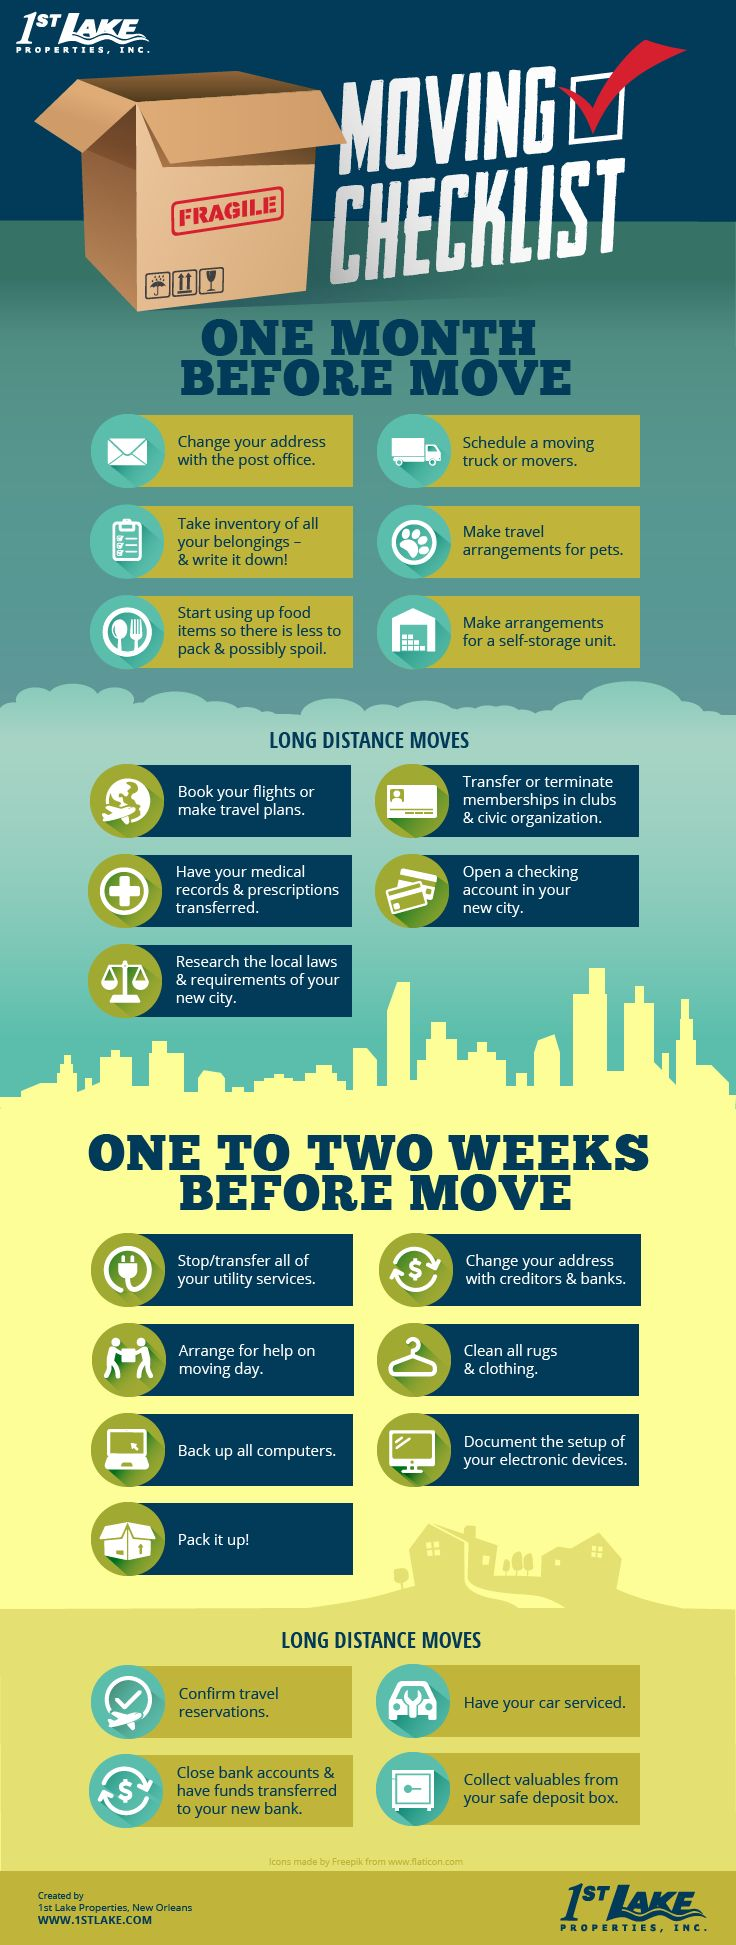 Moving isn't nearly as hard if you have a plan. This new apartment moving checklist infographic has you covered in the months and weeks leading up to your move!